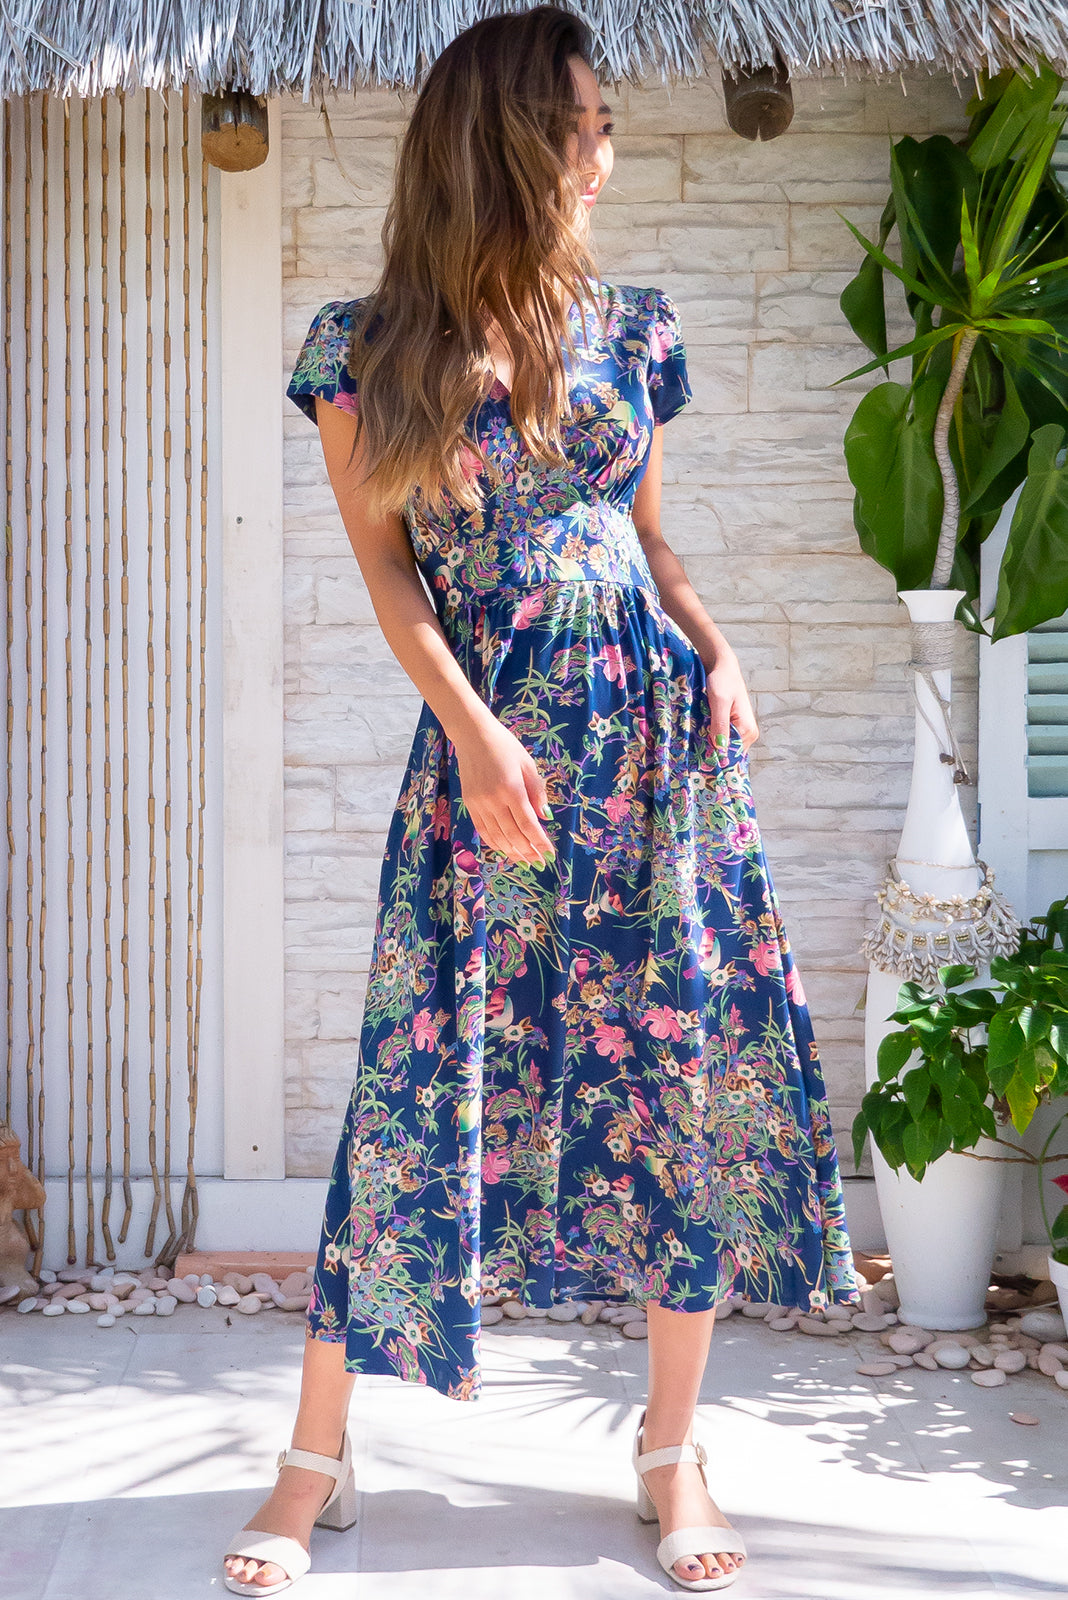 Lizzie Navy Honeyeater features fitted basque waist with gathered bust, elastic shirring at back of waist, deep side pockets, navy blue base with vintage floral print in pinks, greens, creams and blues, with sunbirds scattered throughout in woven 100% rayon.